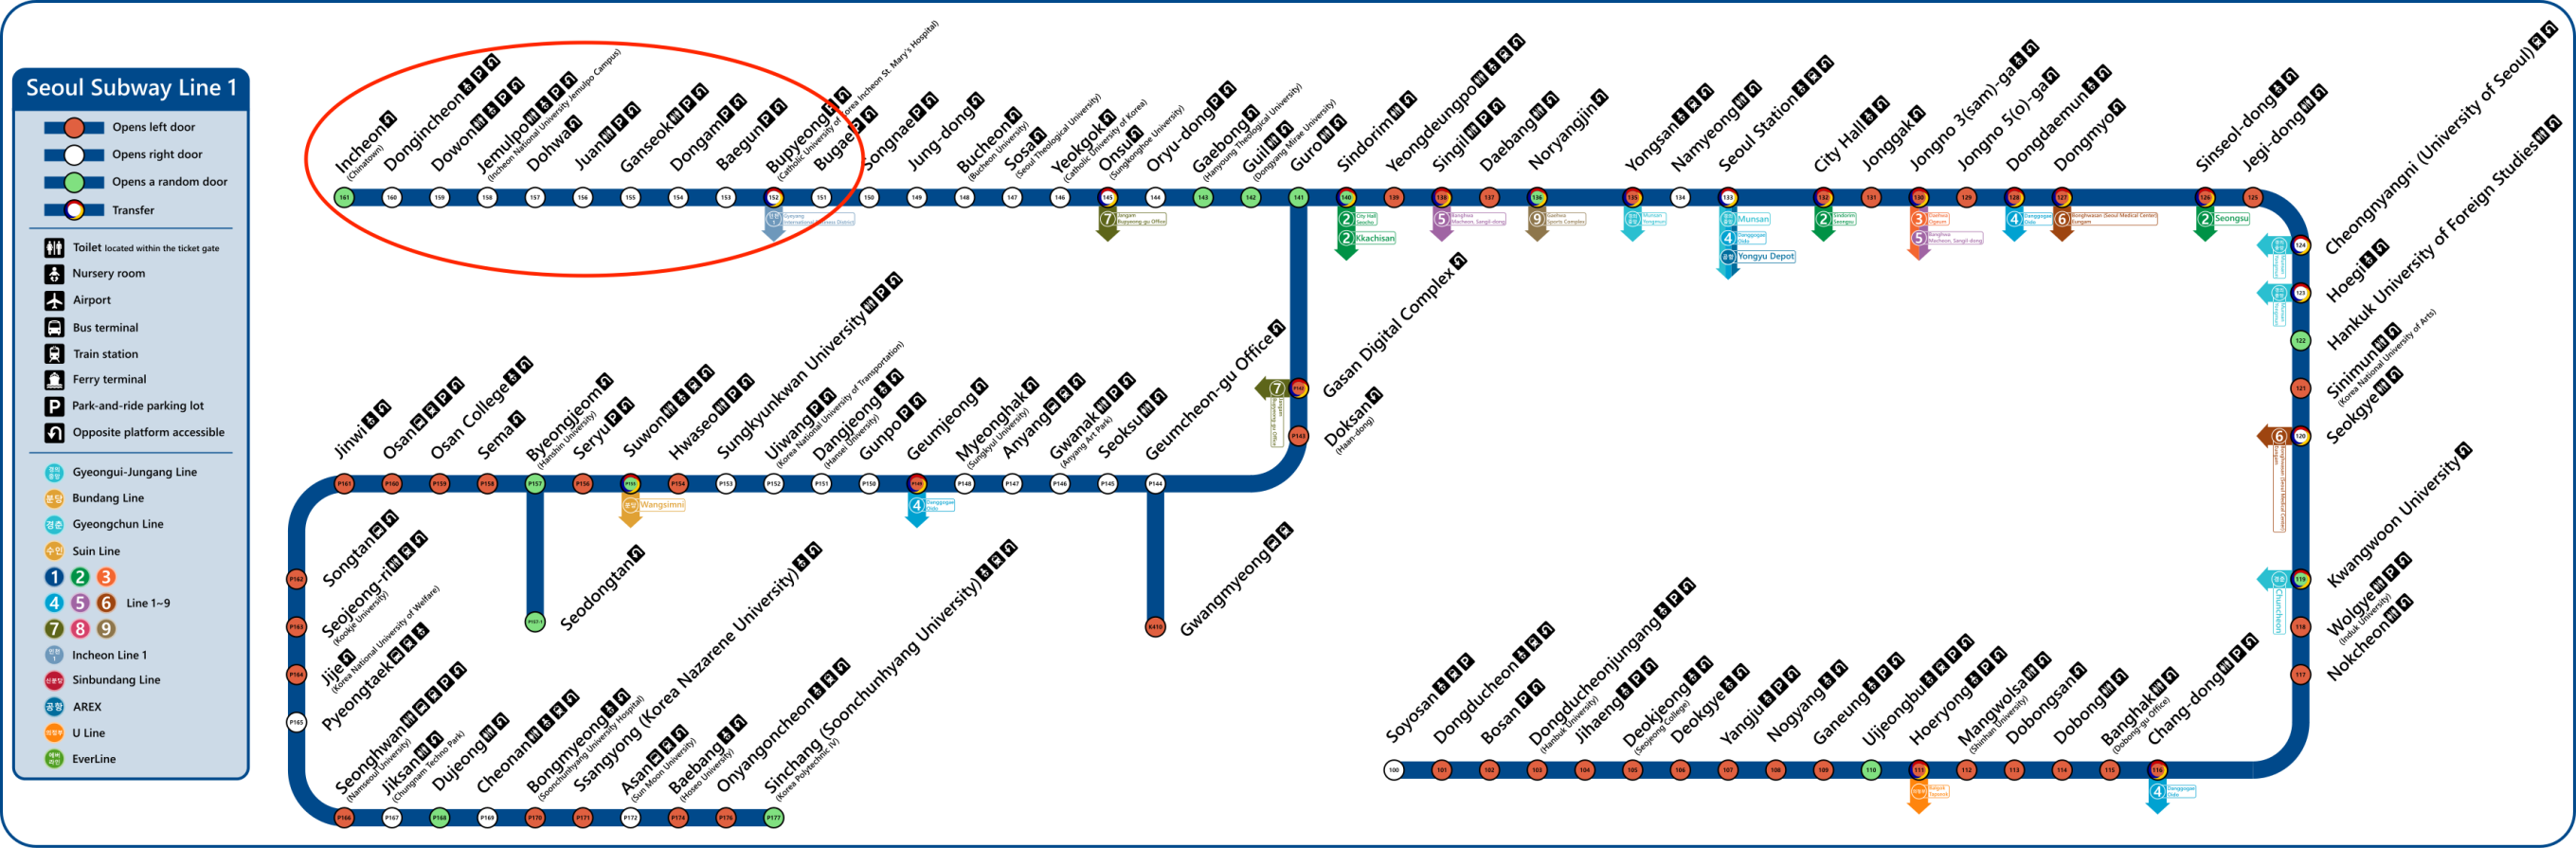 seoul_subway_line_1_eng-svg